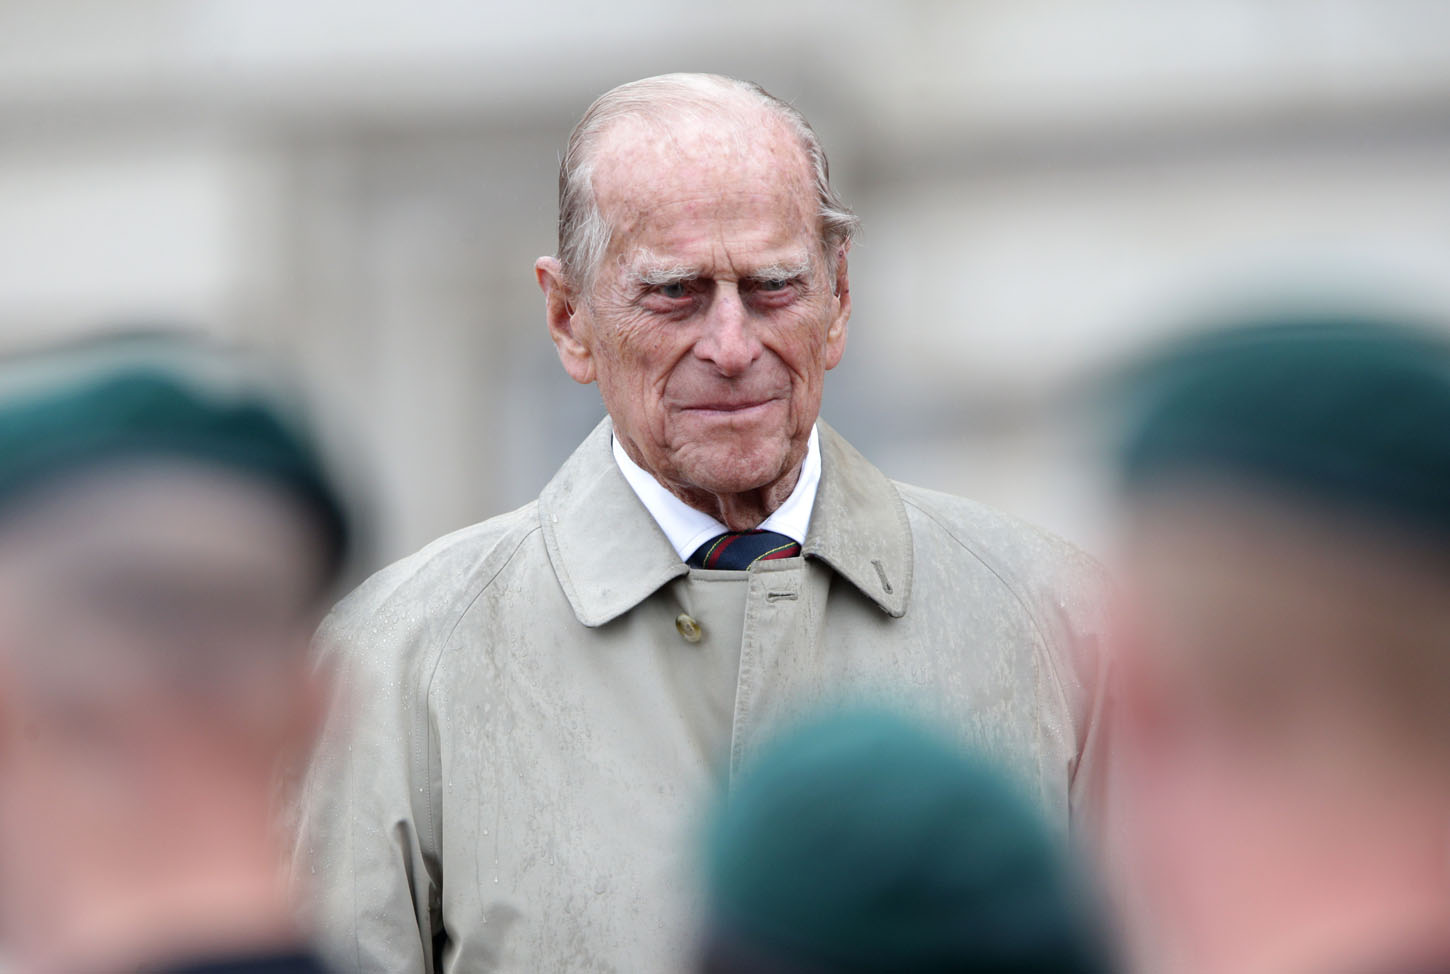 LONDON, ENGLAND - AUGUST 2:  Prince Philip, Duke of Edinburgh in his role as Captain General, Royal Marines, makes his final individual public engagement as he attends a parade to mark the finale of the 1664 Global Challenge, on the Buckingham Palace Forecourt on August 2, 2017 in London, England. (Photo by Yui Mok - WPA Pool/Getty Images)